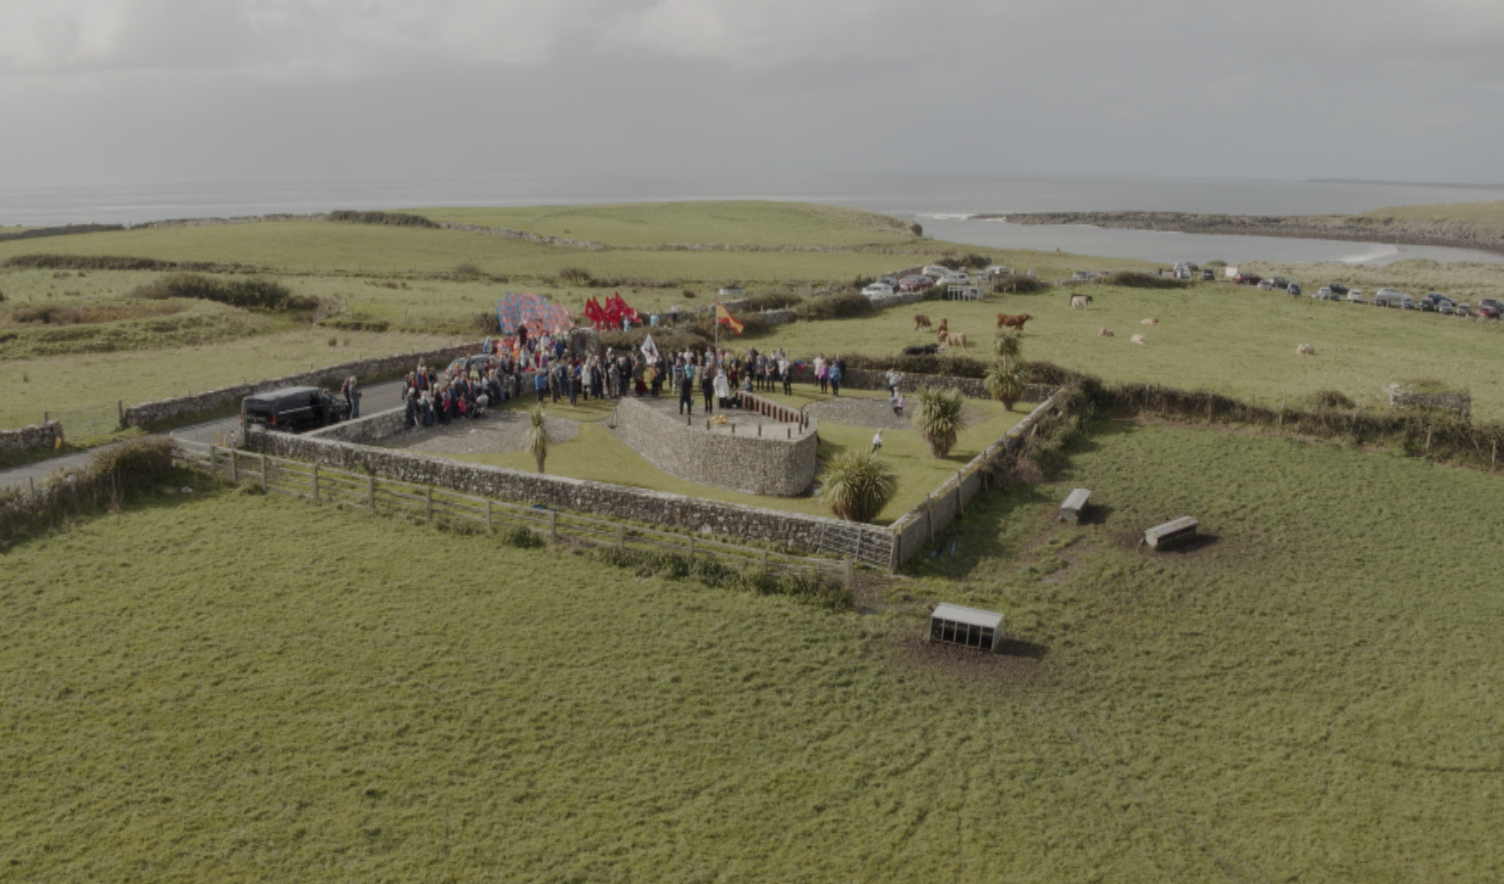 Aerial view of Spanish Armada commemoration at the Armada Monument, Streedagh yesterday (photo Omedia/Mike Guckian)